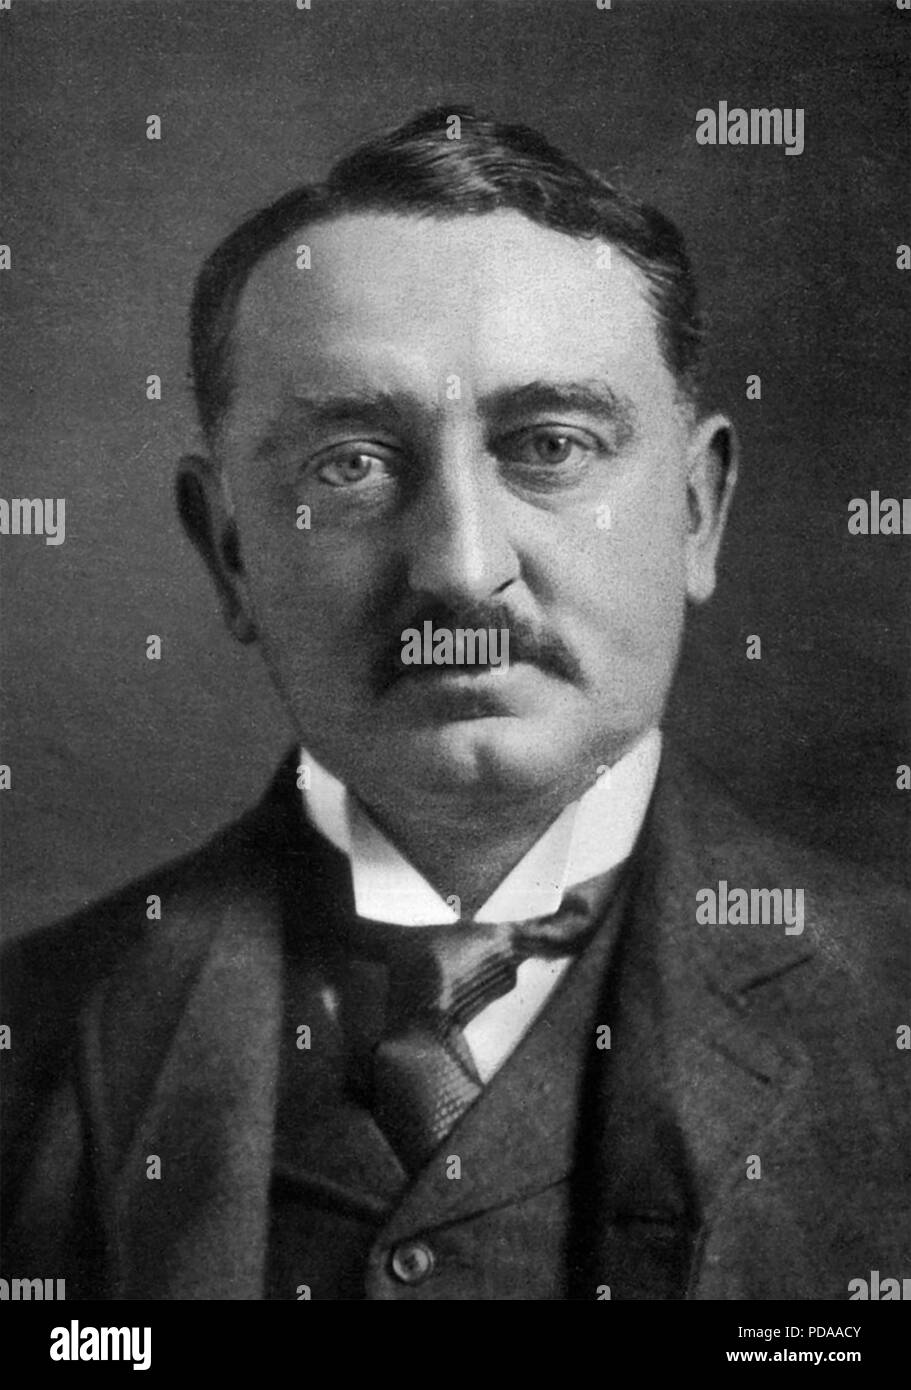 CECIL RHODES (1853-1902) English businessman, mining magnate and South African politician, about 1900 Stock Photo